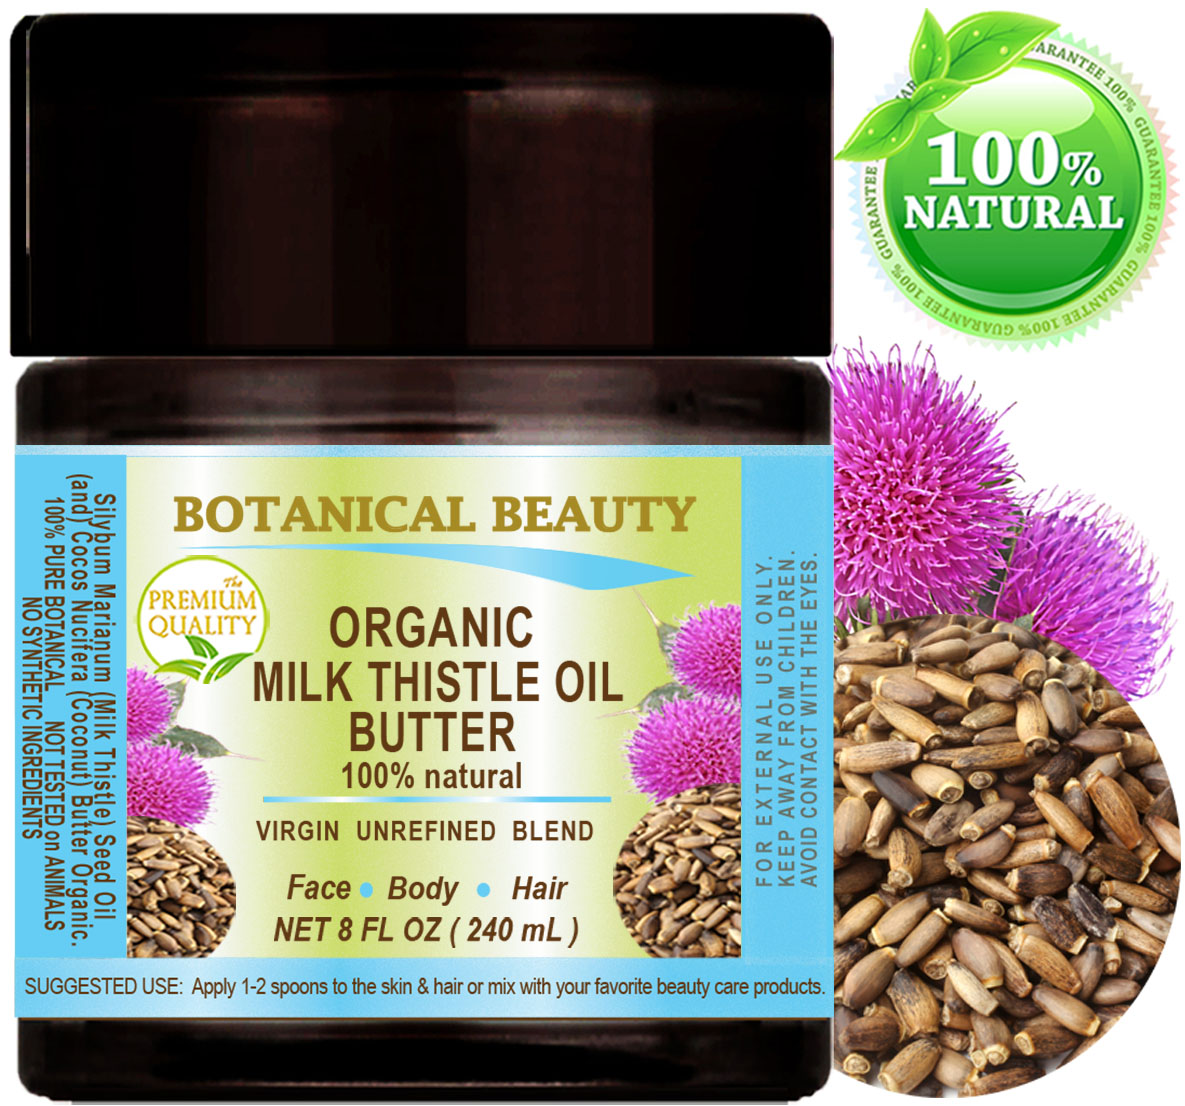 Botanical Beauty Organic Milk Thistle Oil Butter